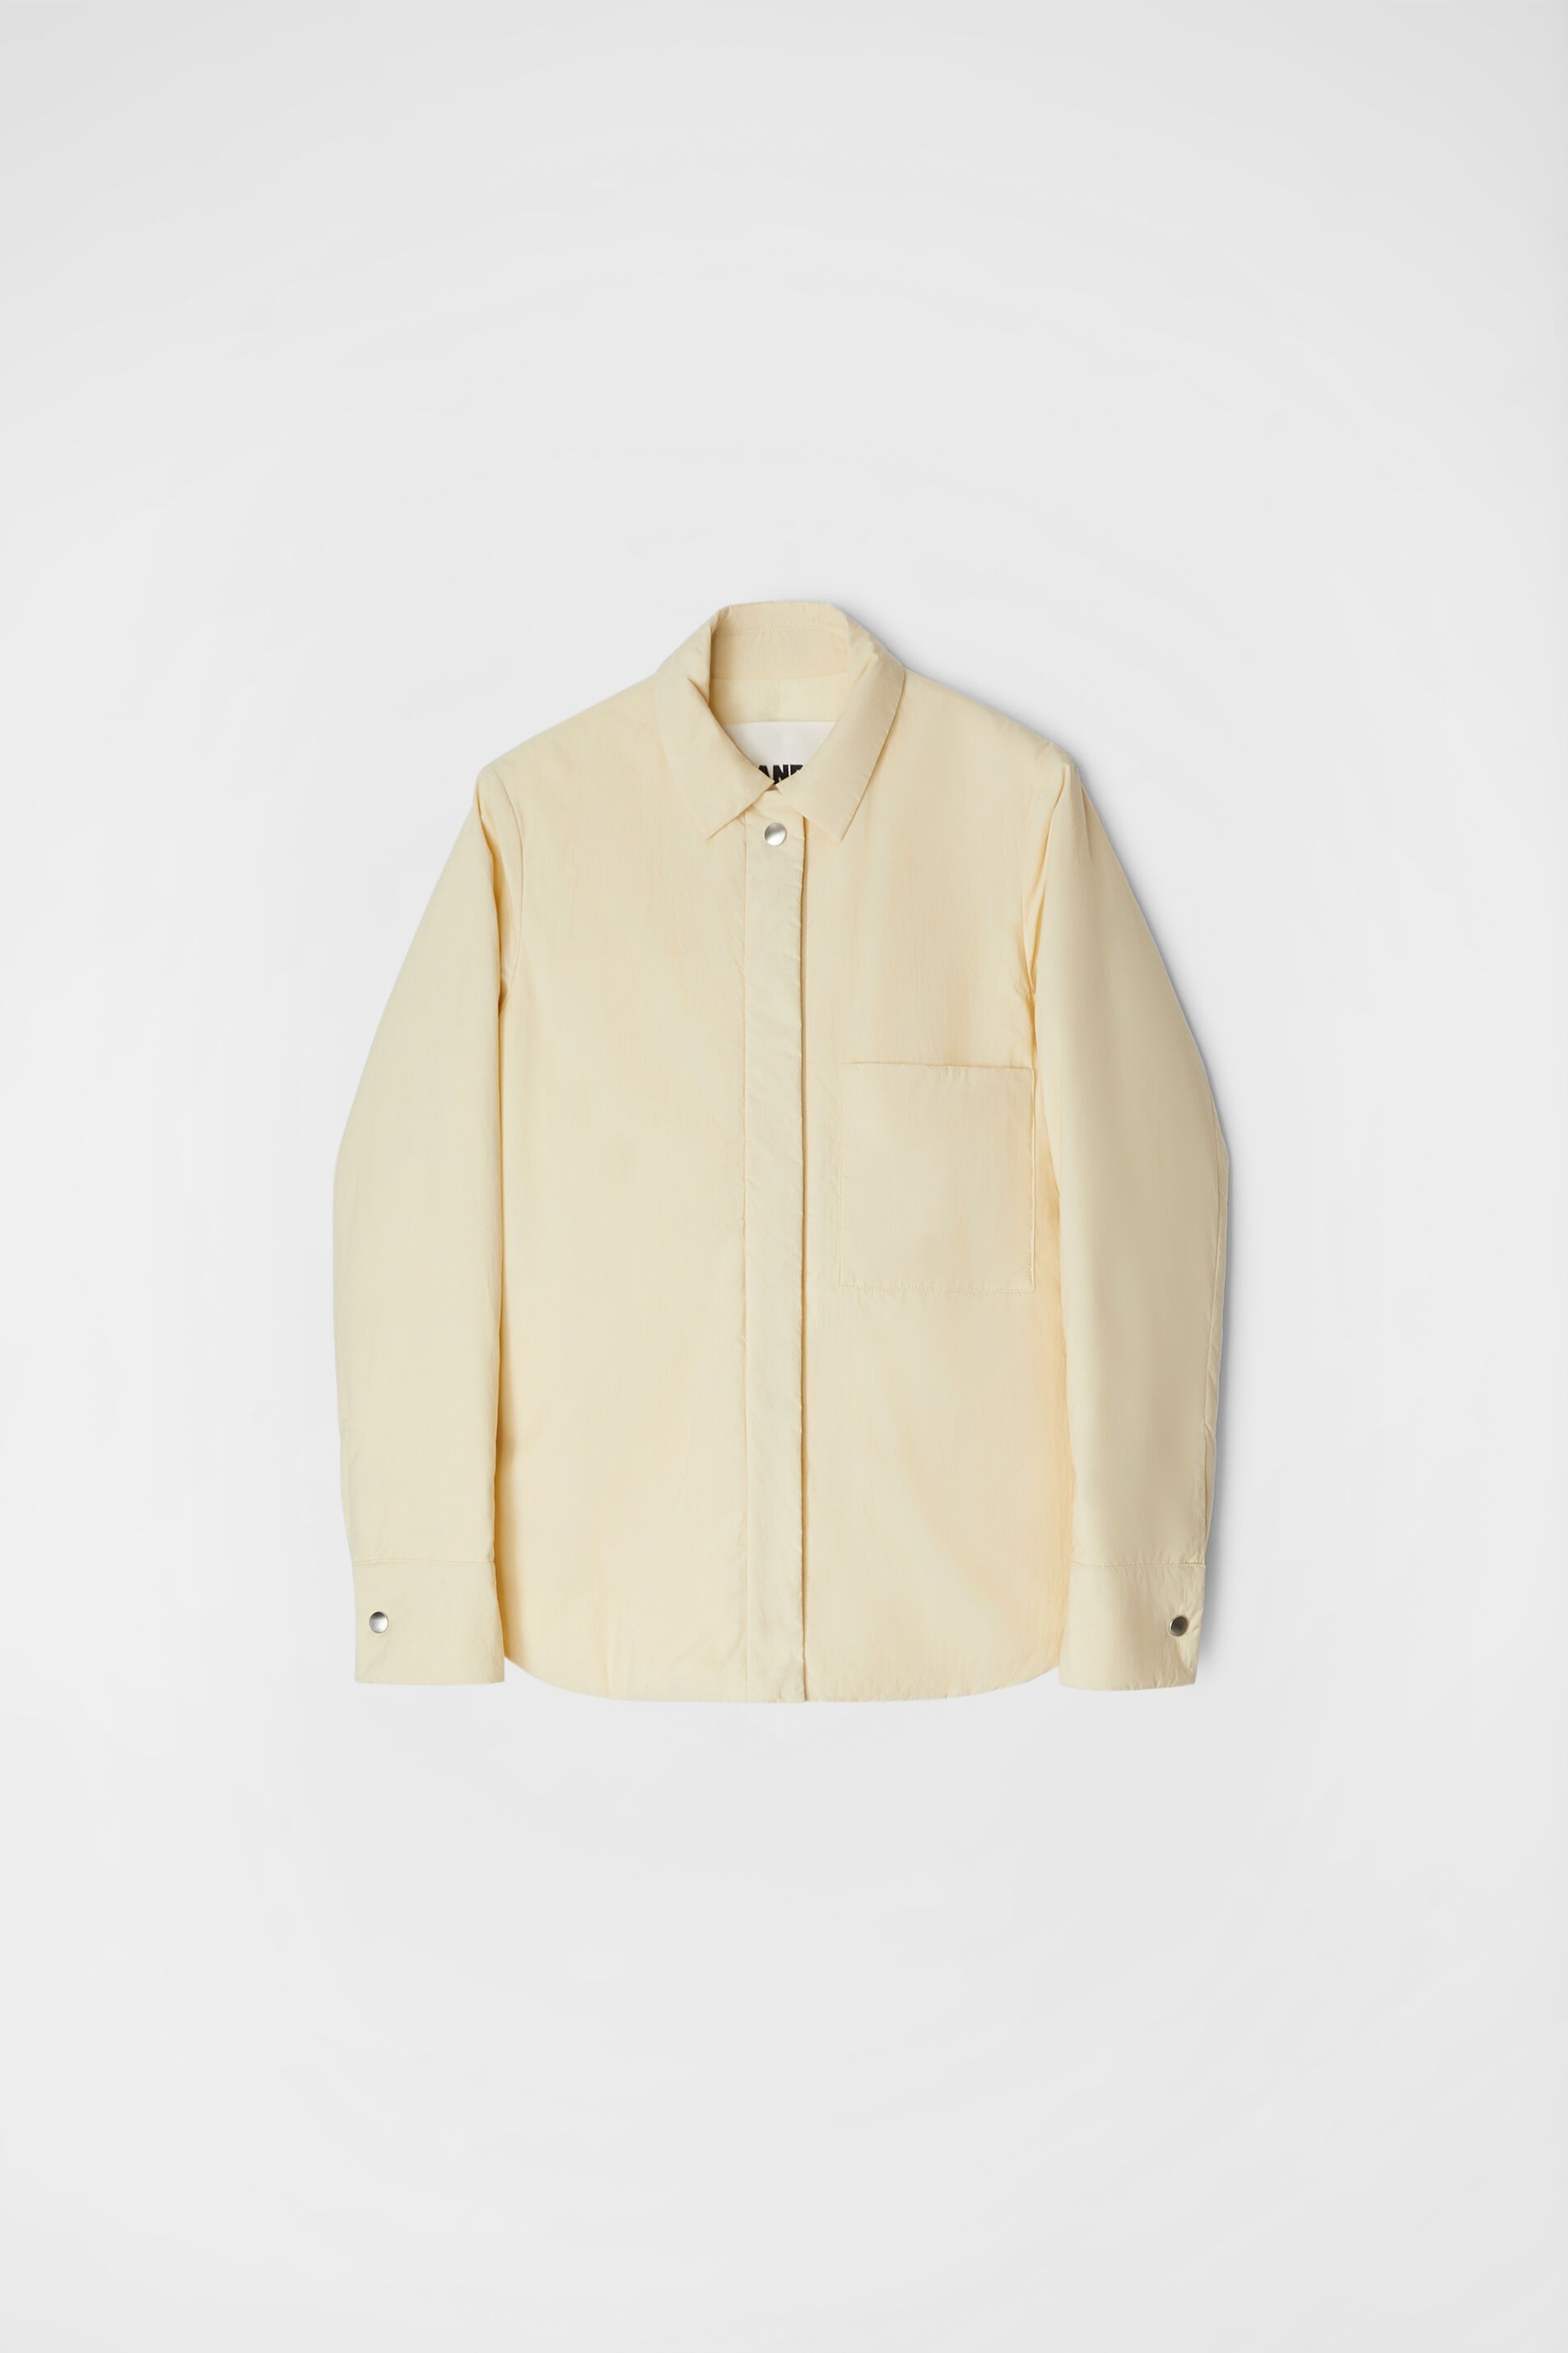 Down Shirt Jacket, beige, large